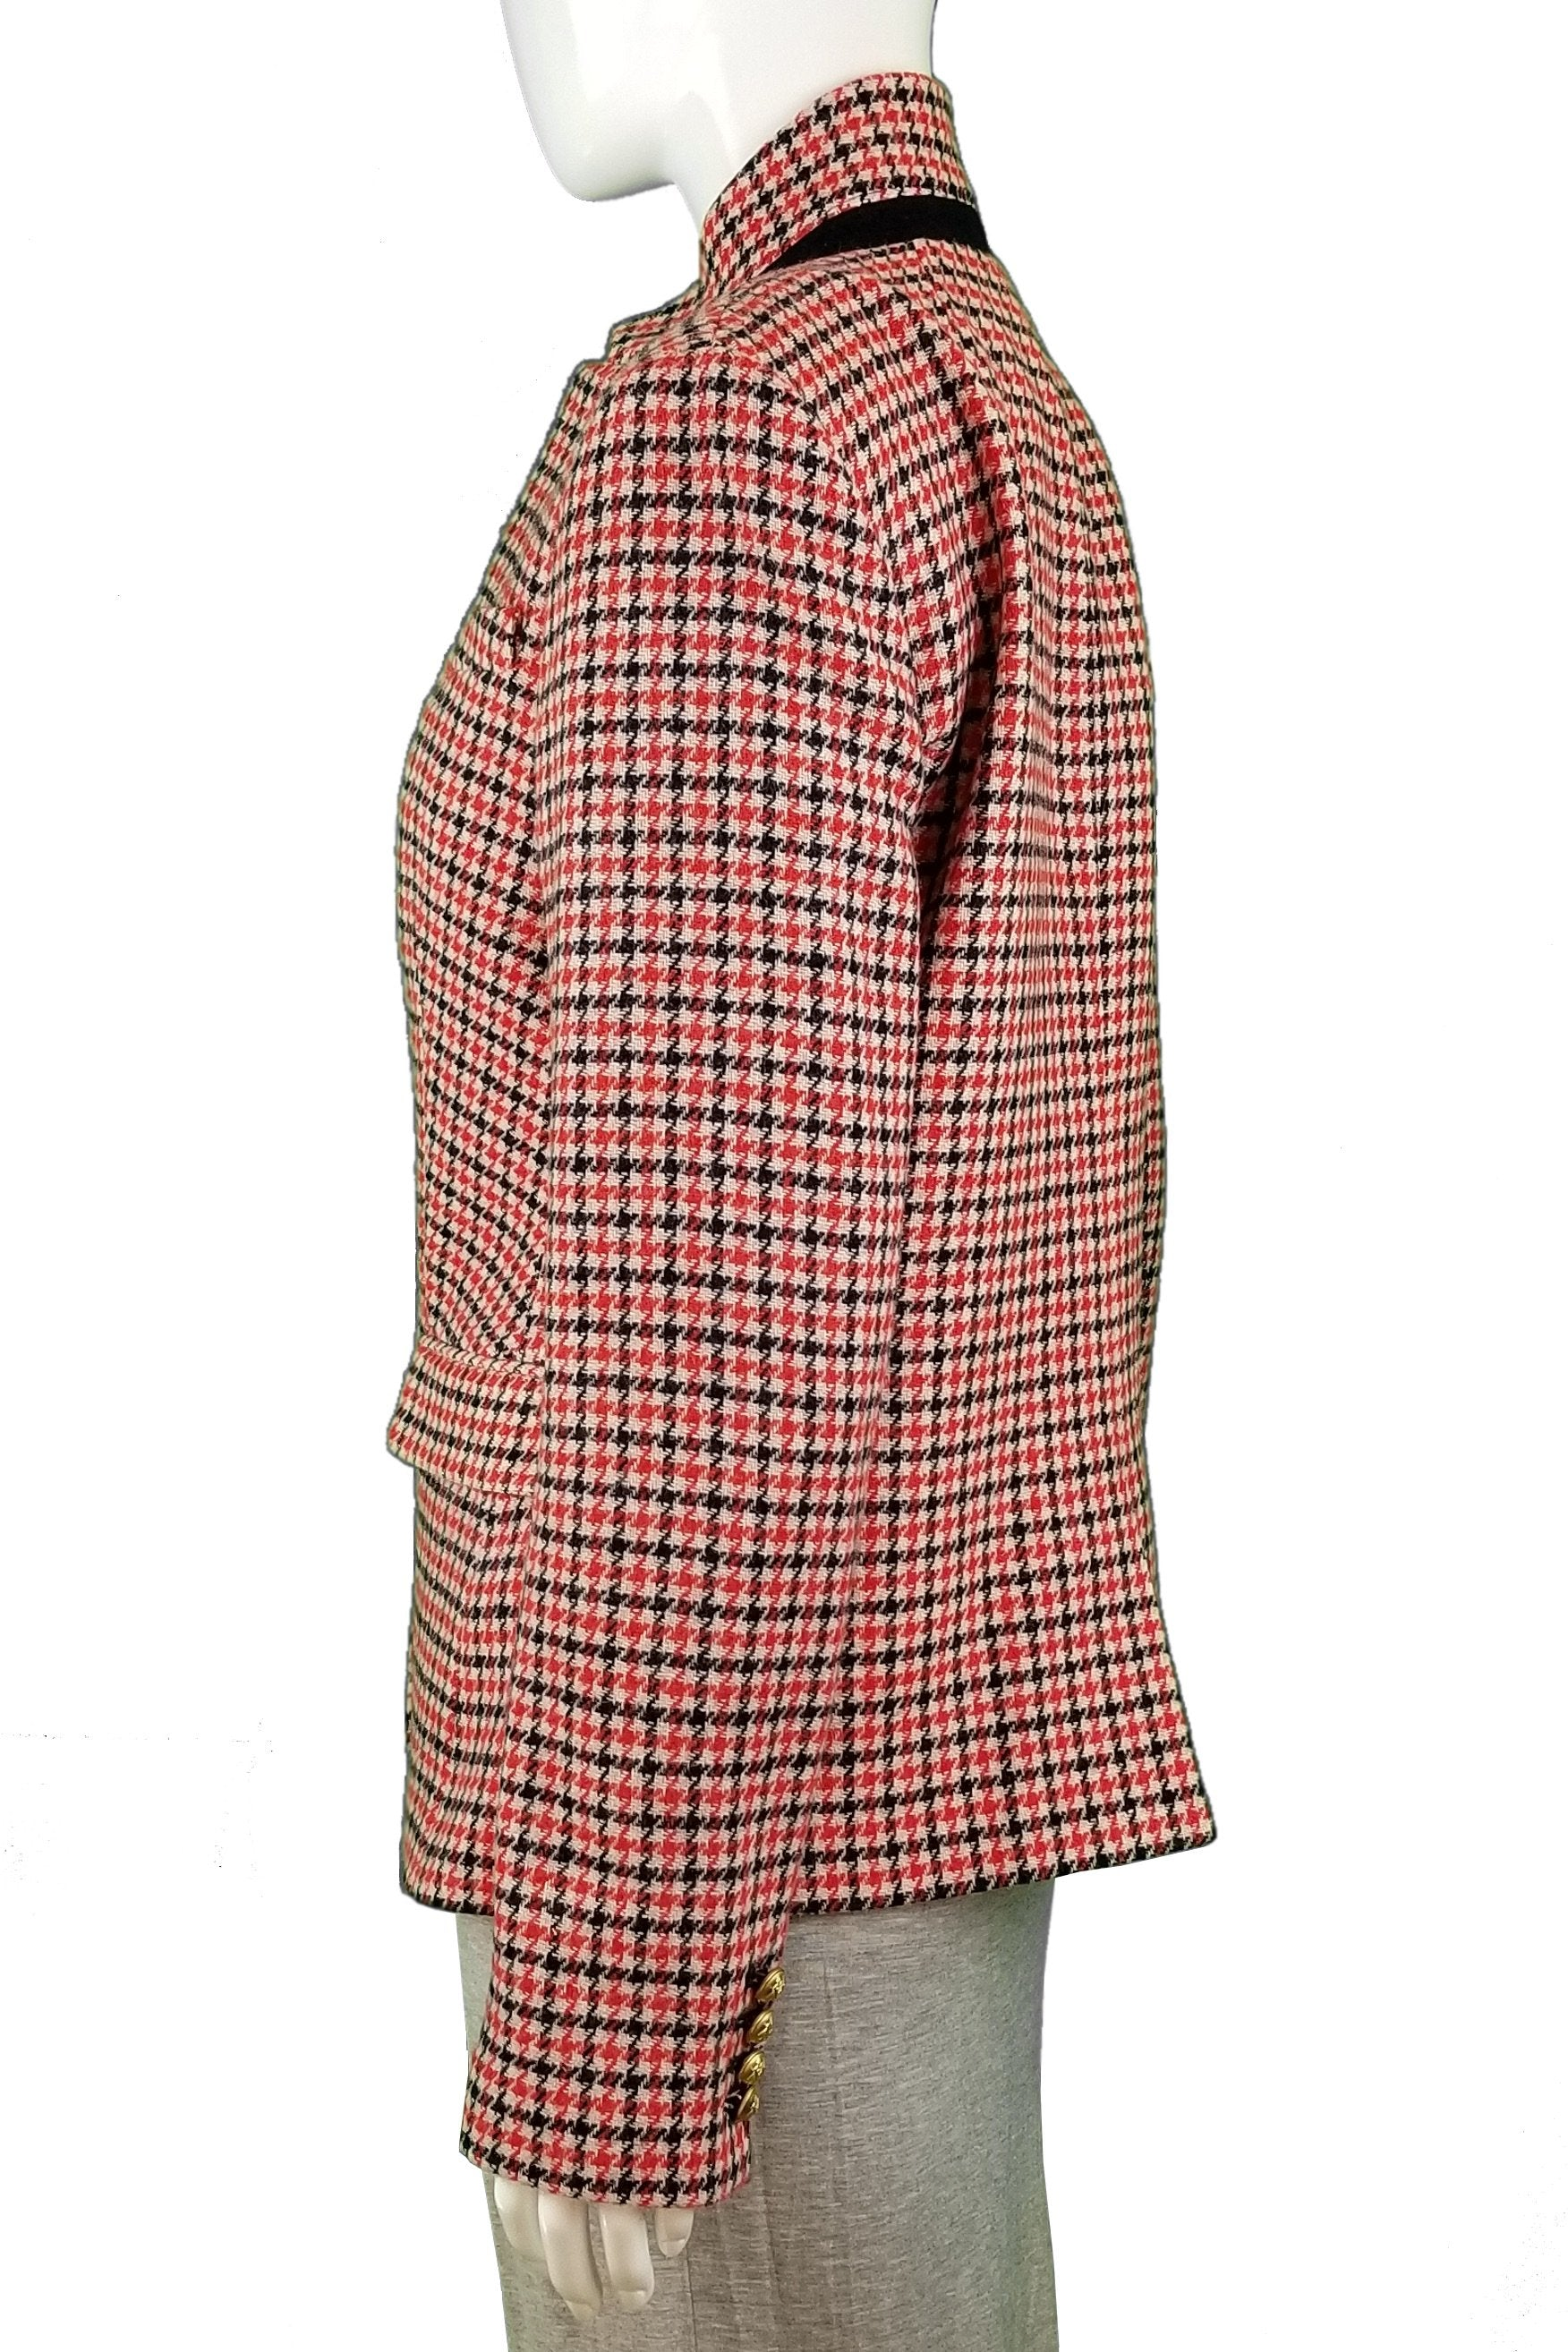 J Crew Plaid Wool Jacket, Any fashionable Boss Lady deserves an elegant and professional wool jacket., Red, 80% Wool, 20% Nylon, women's jacket, women's thick jacket, women's fall jacket, women's spring jacket, women's plaid jacket